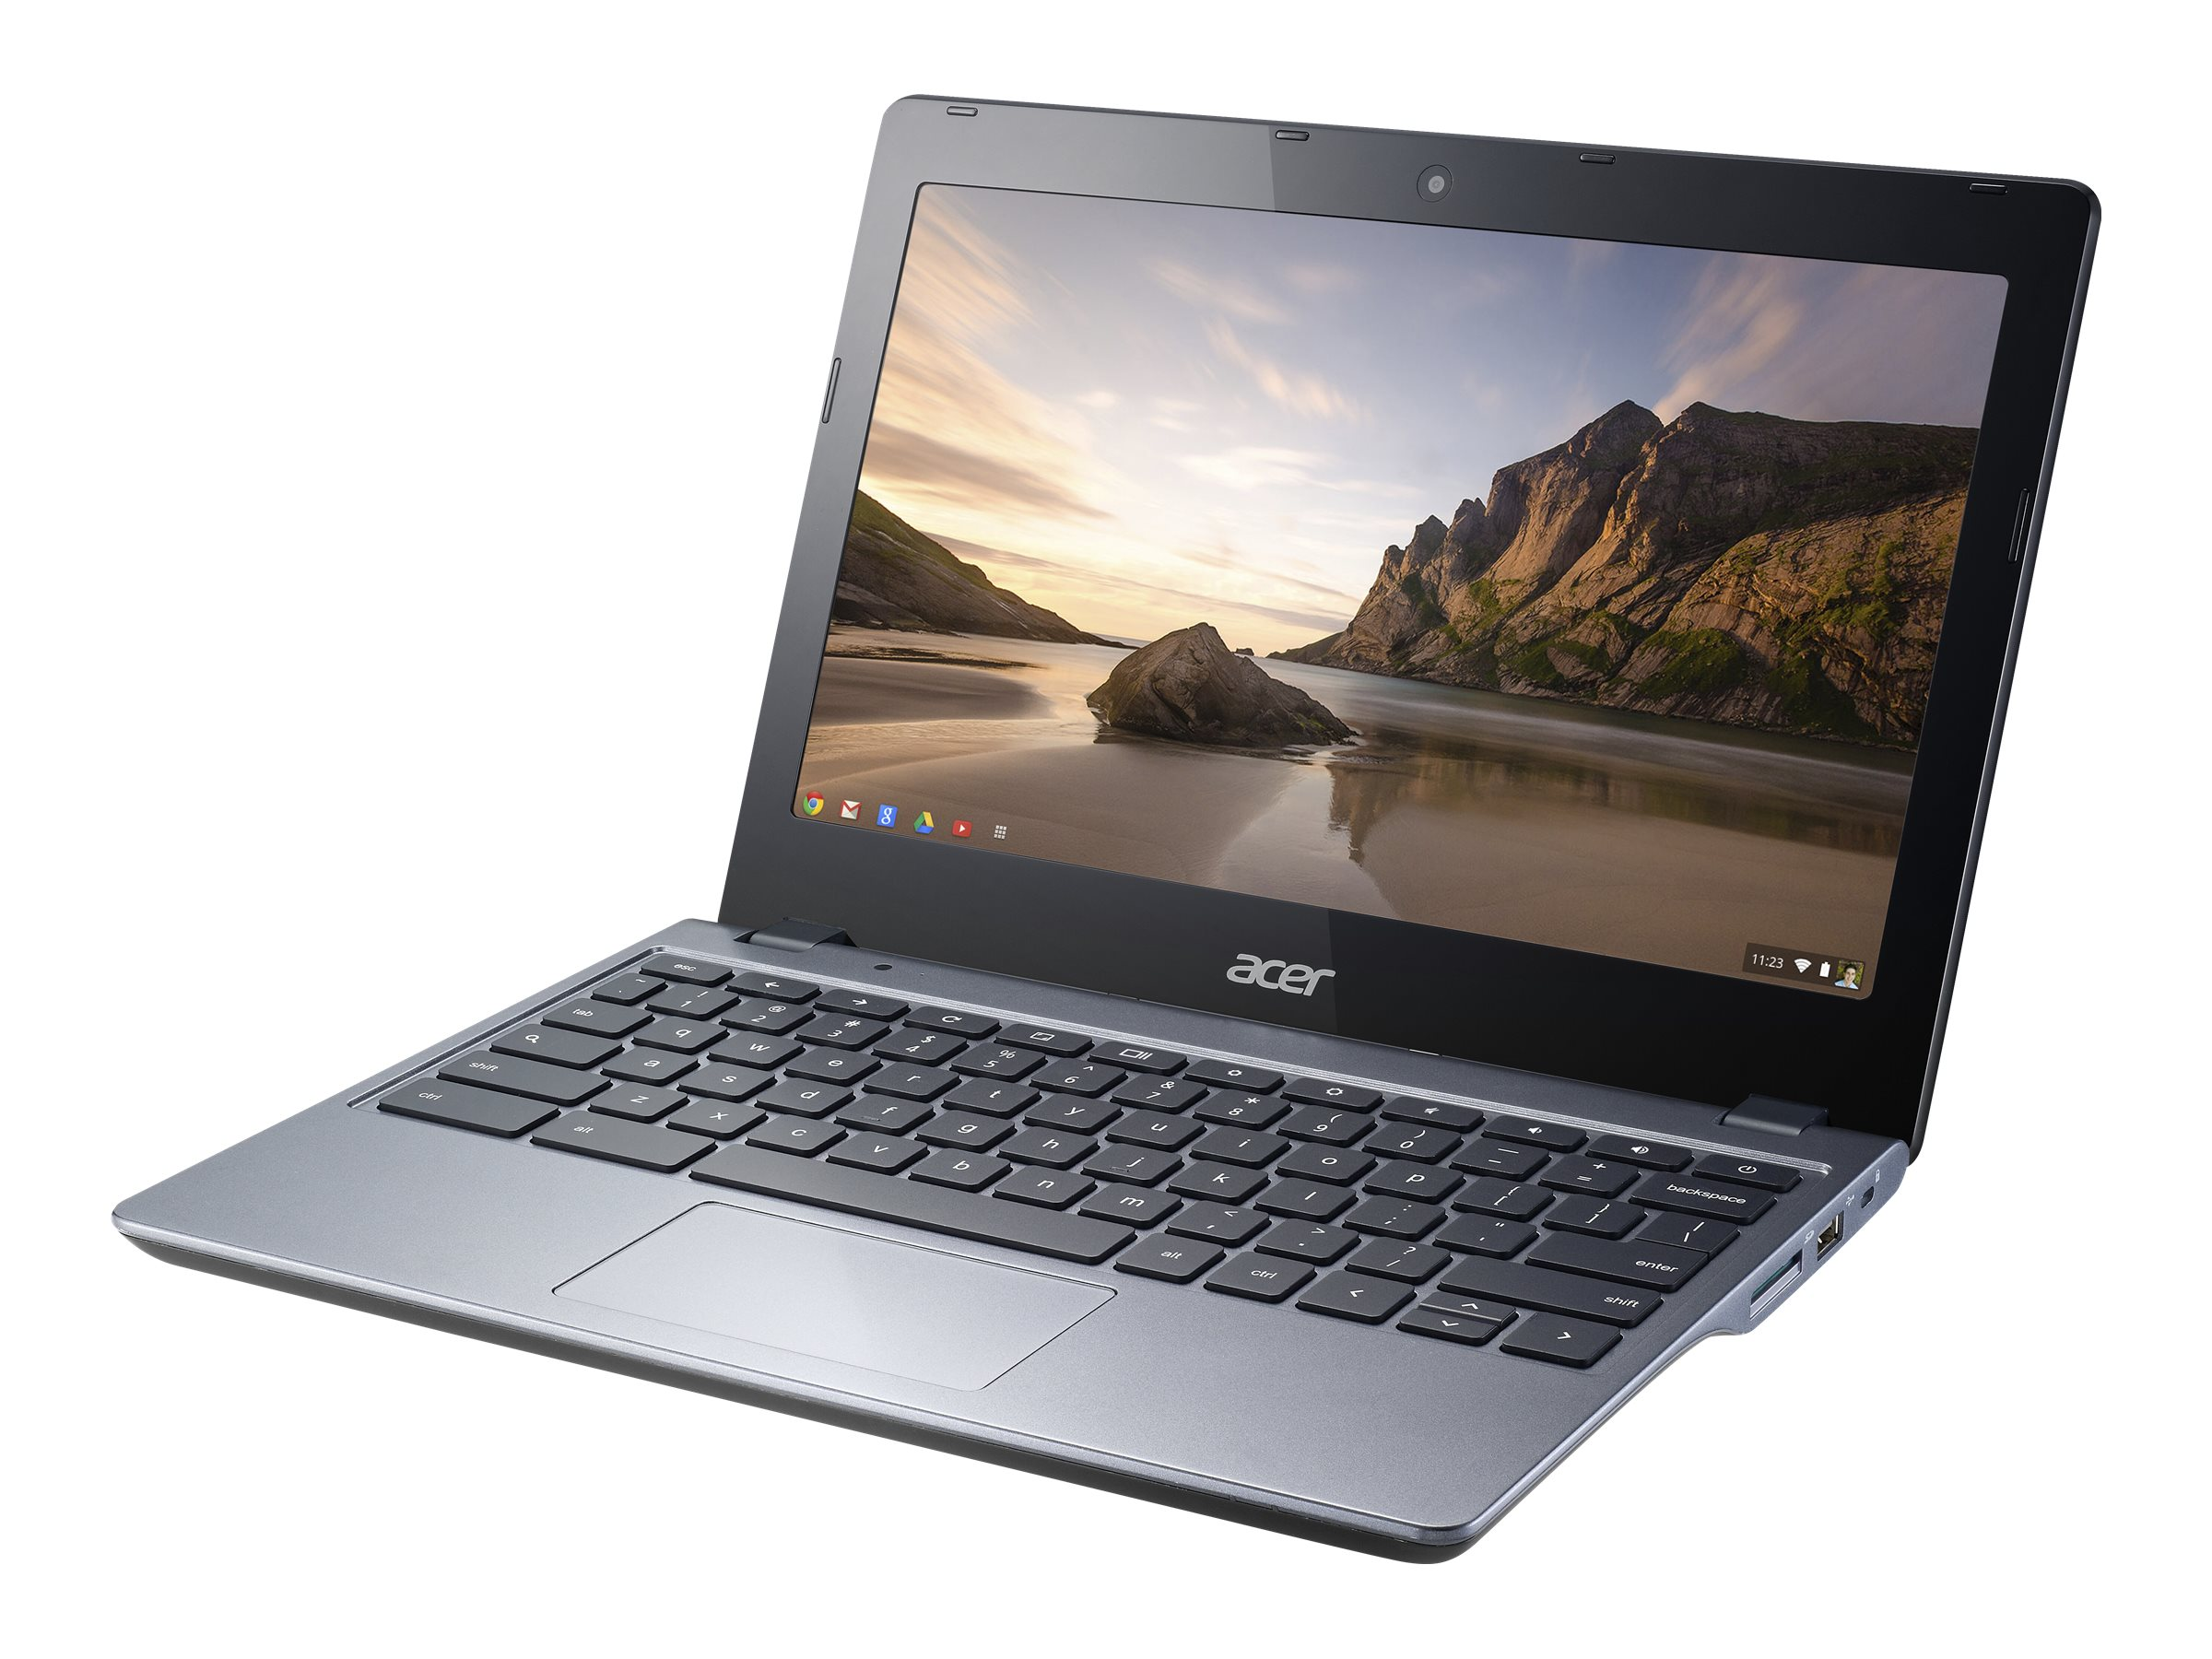 Acer Chromebook C720-3605 : 1.7GHz Core i3 11.6in display, NX.SHEAA.017, 17376207, Notebooks